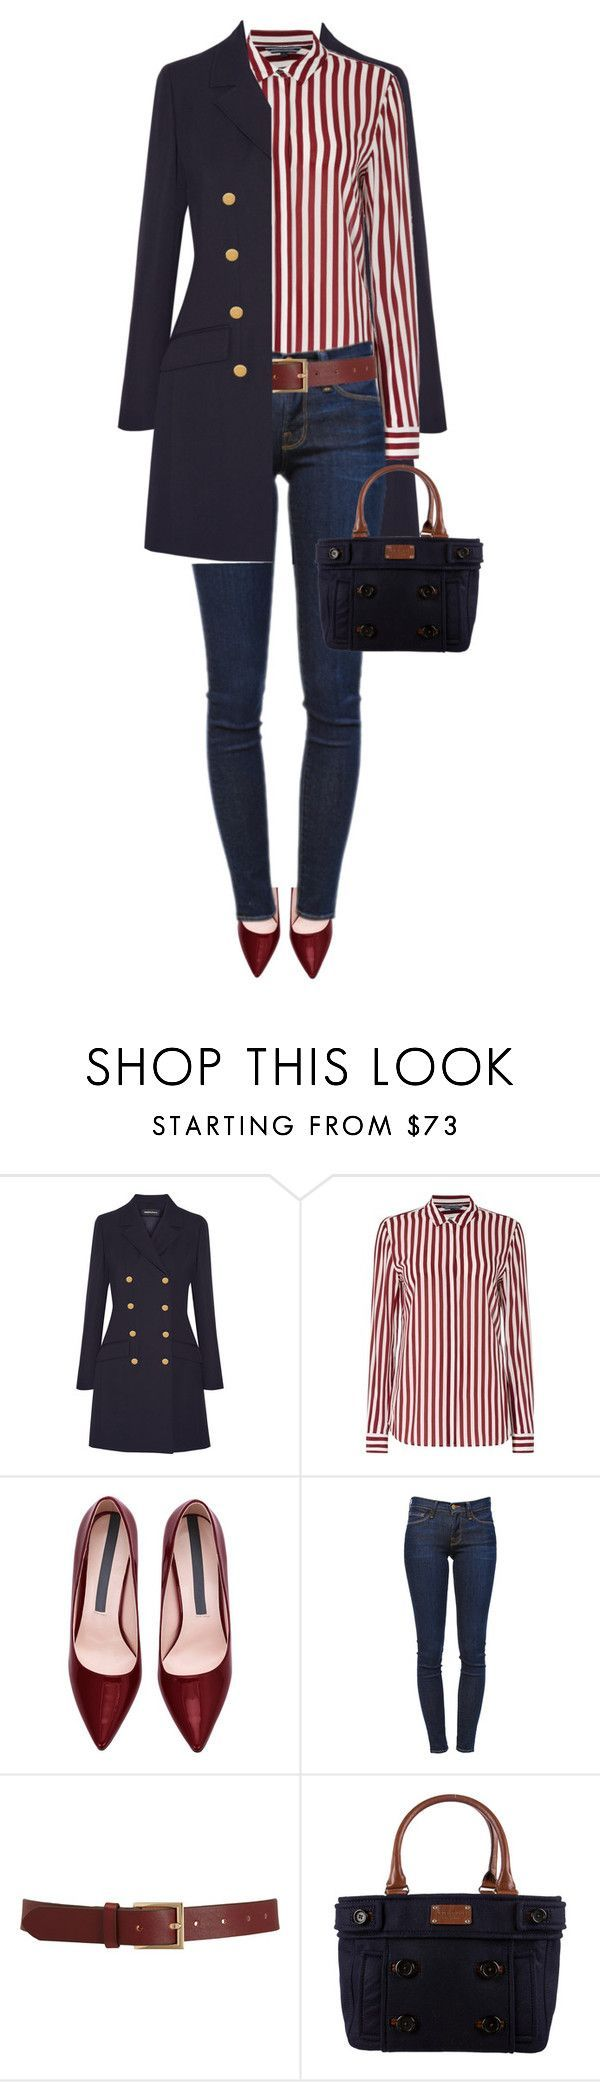 """Untitled #1225"" by ruru833 ❤ liked on Polyvore featuring Vanessa Seward, Tommy Hilfiger, Frame Denim, Barneys New York and Kate Spade"